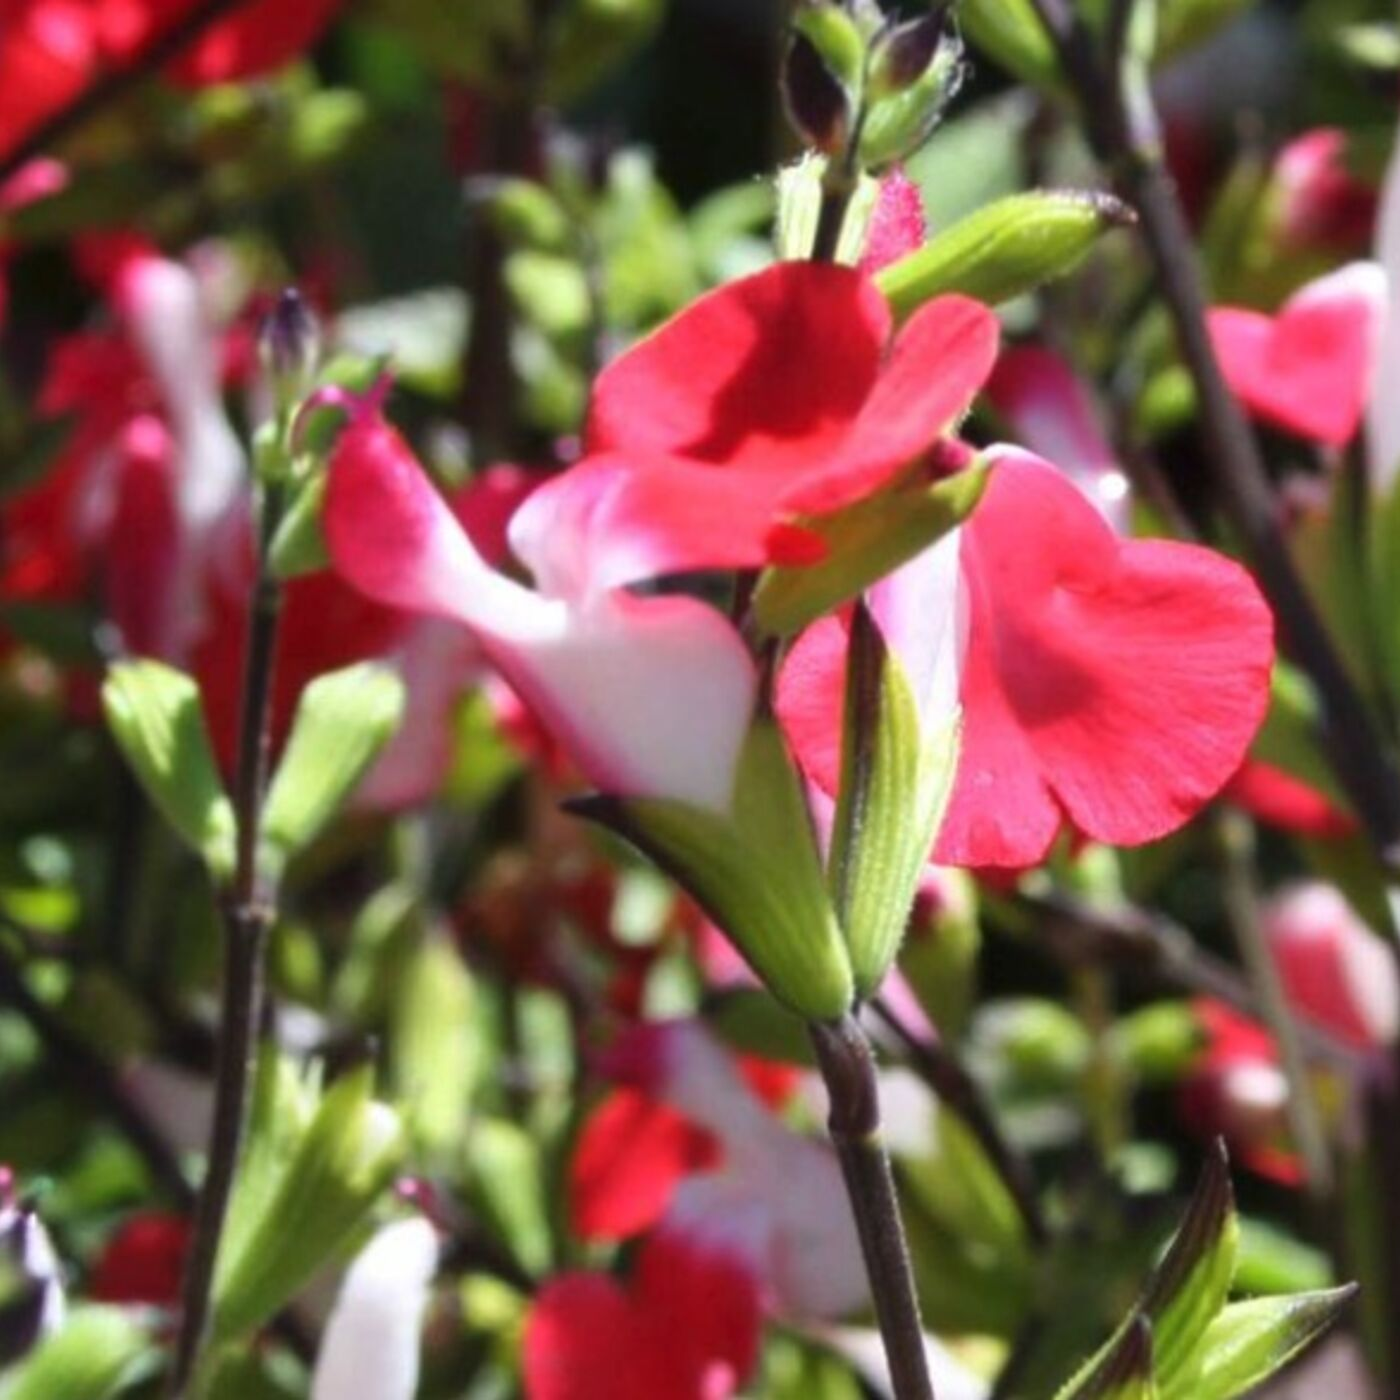 Water Saving Incentives. June Vegetables. The Hot Lips Salvia.